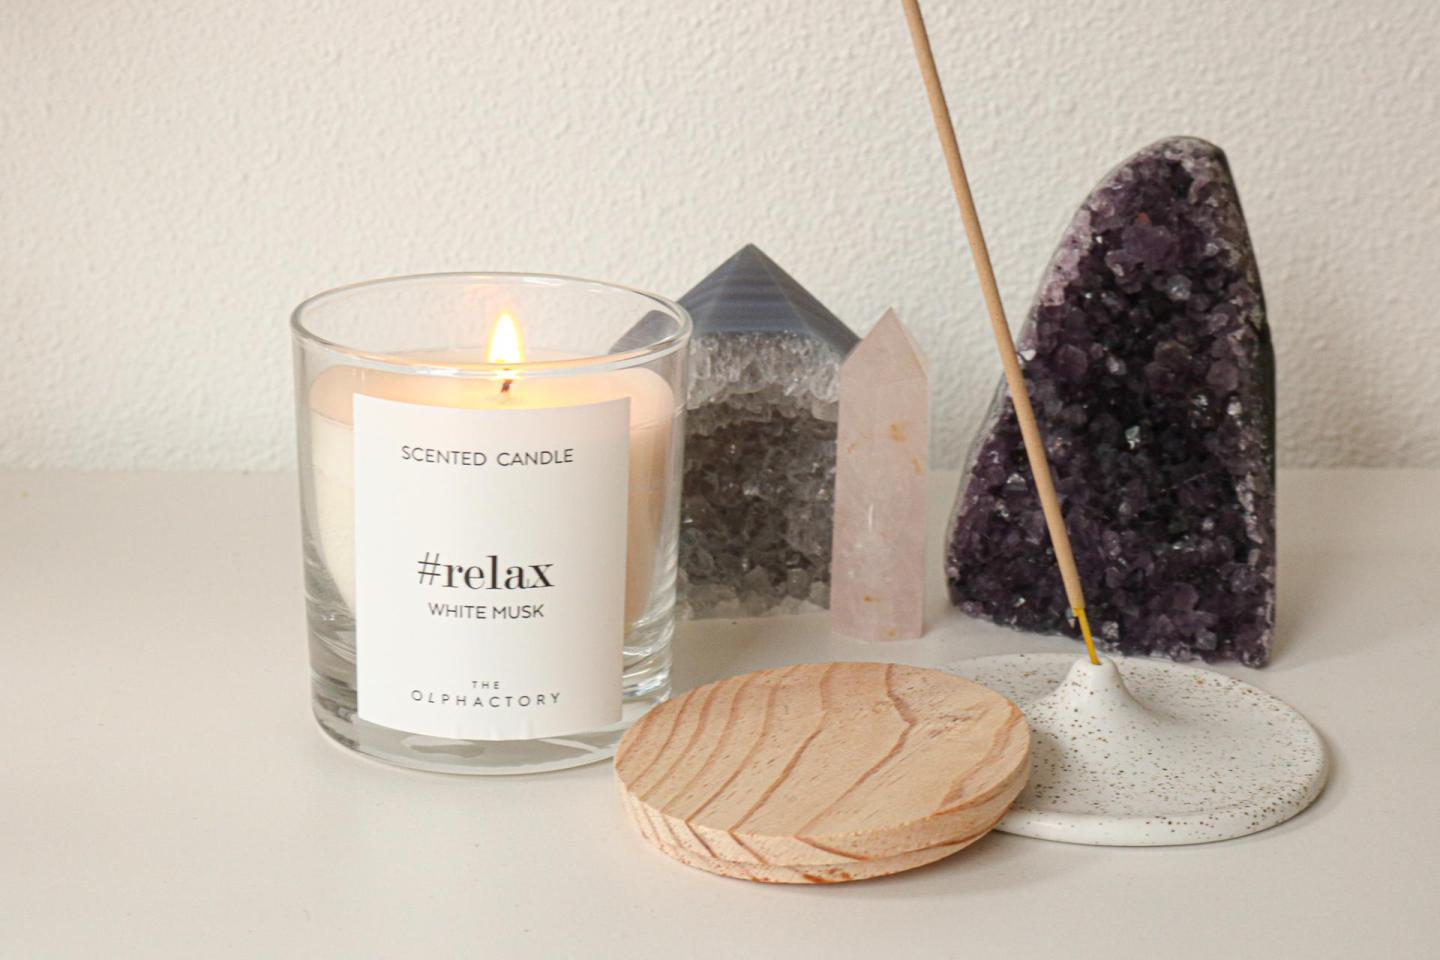 scented candle relax white musk